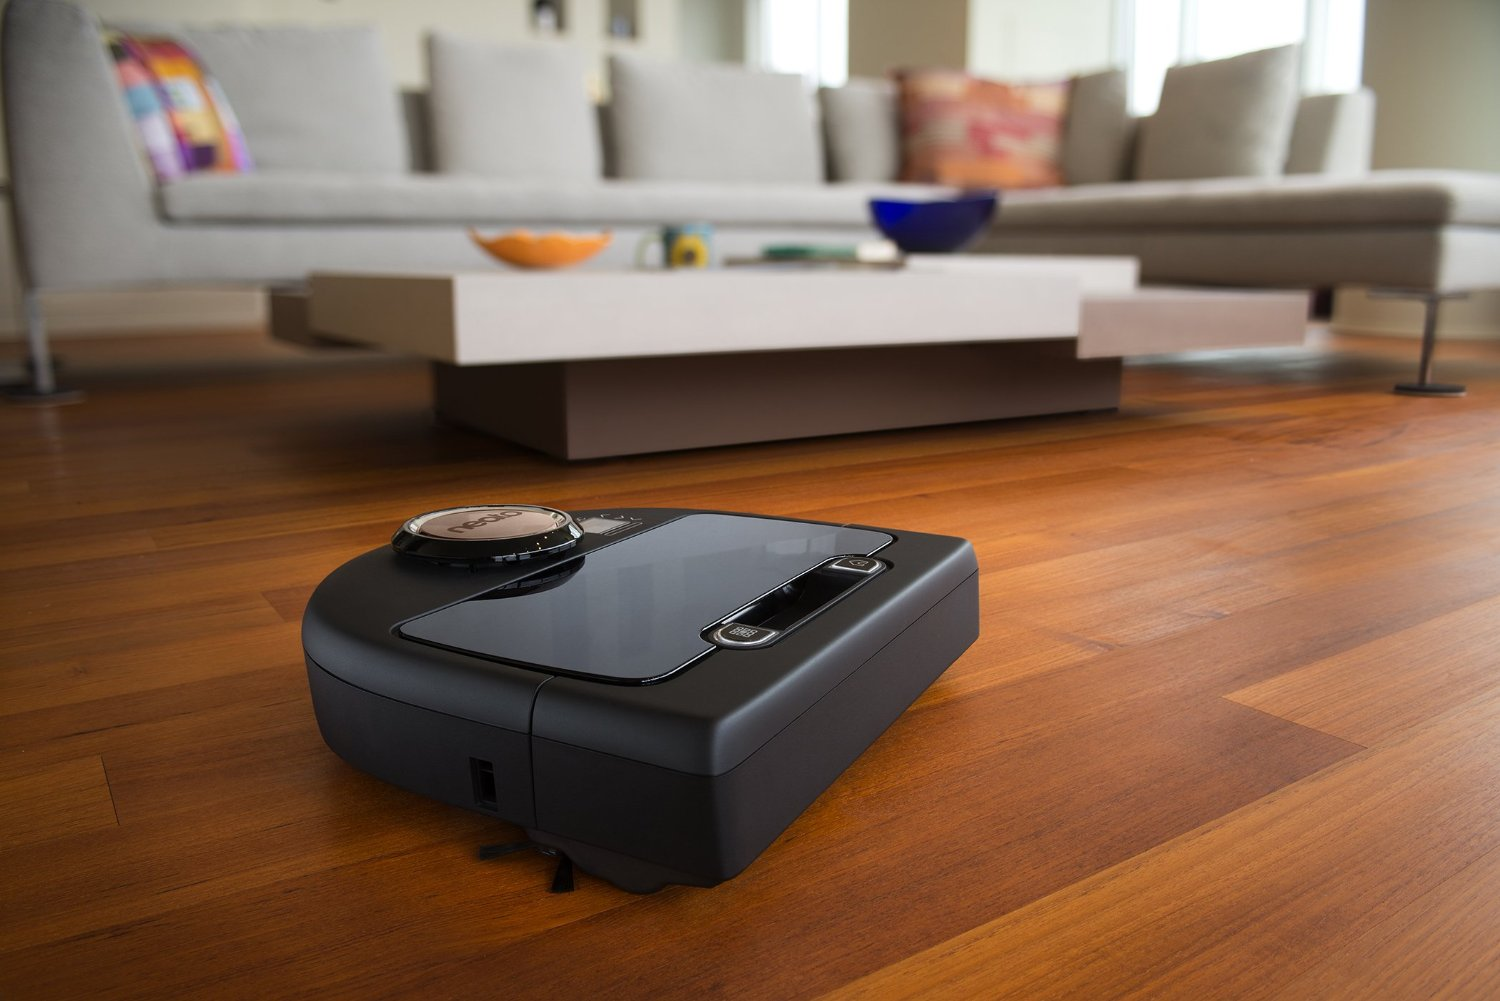 robot vacuum buying guide: what you need to know | tom's guide